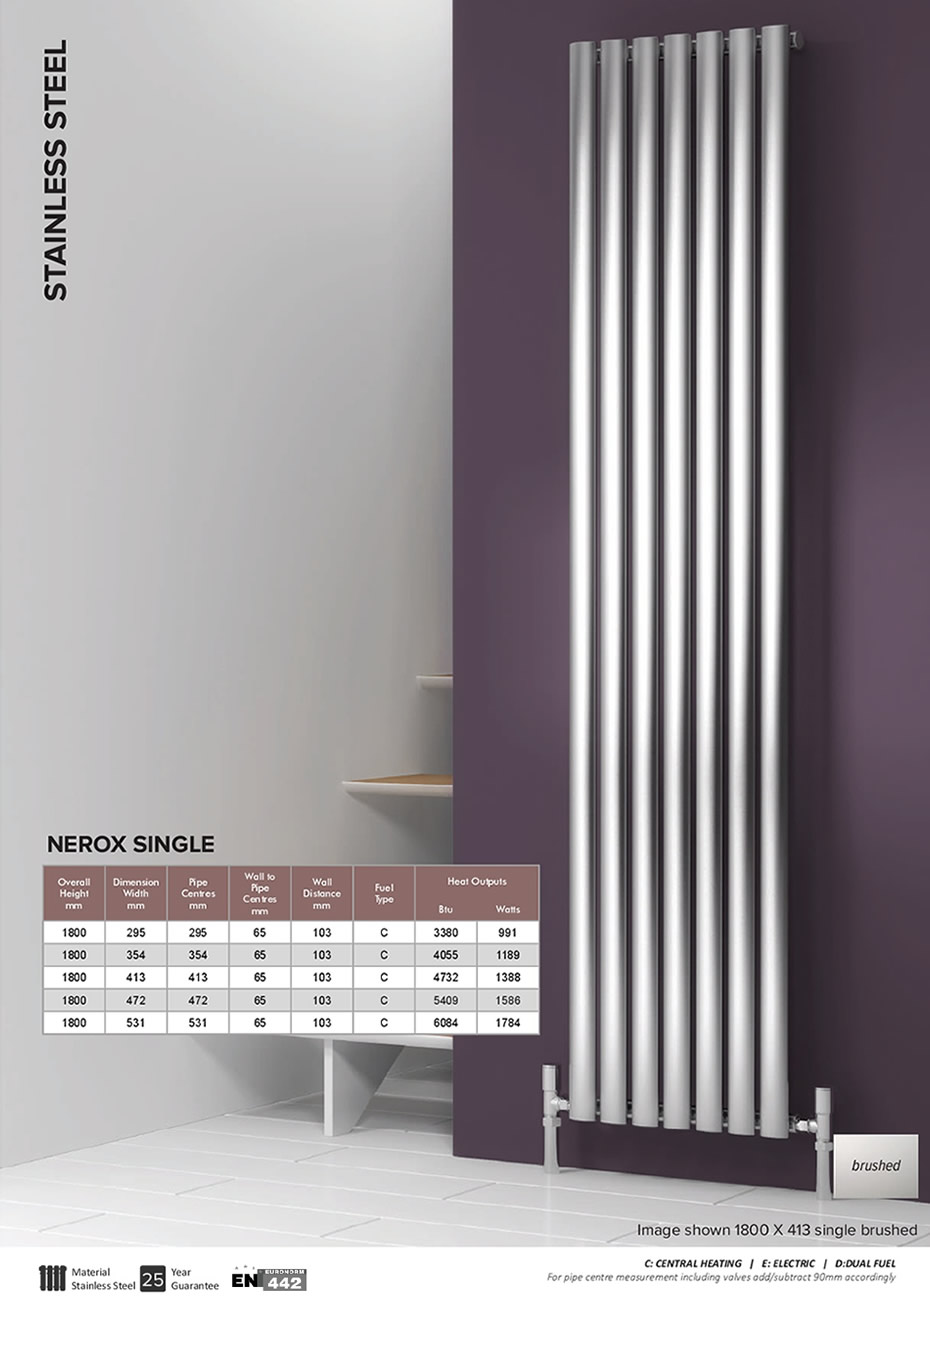 reina nerox single brushed vertical